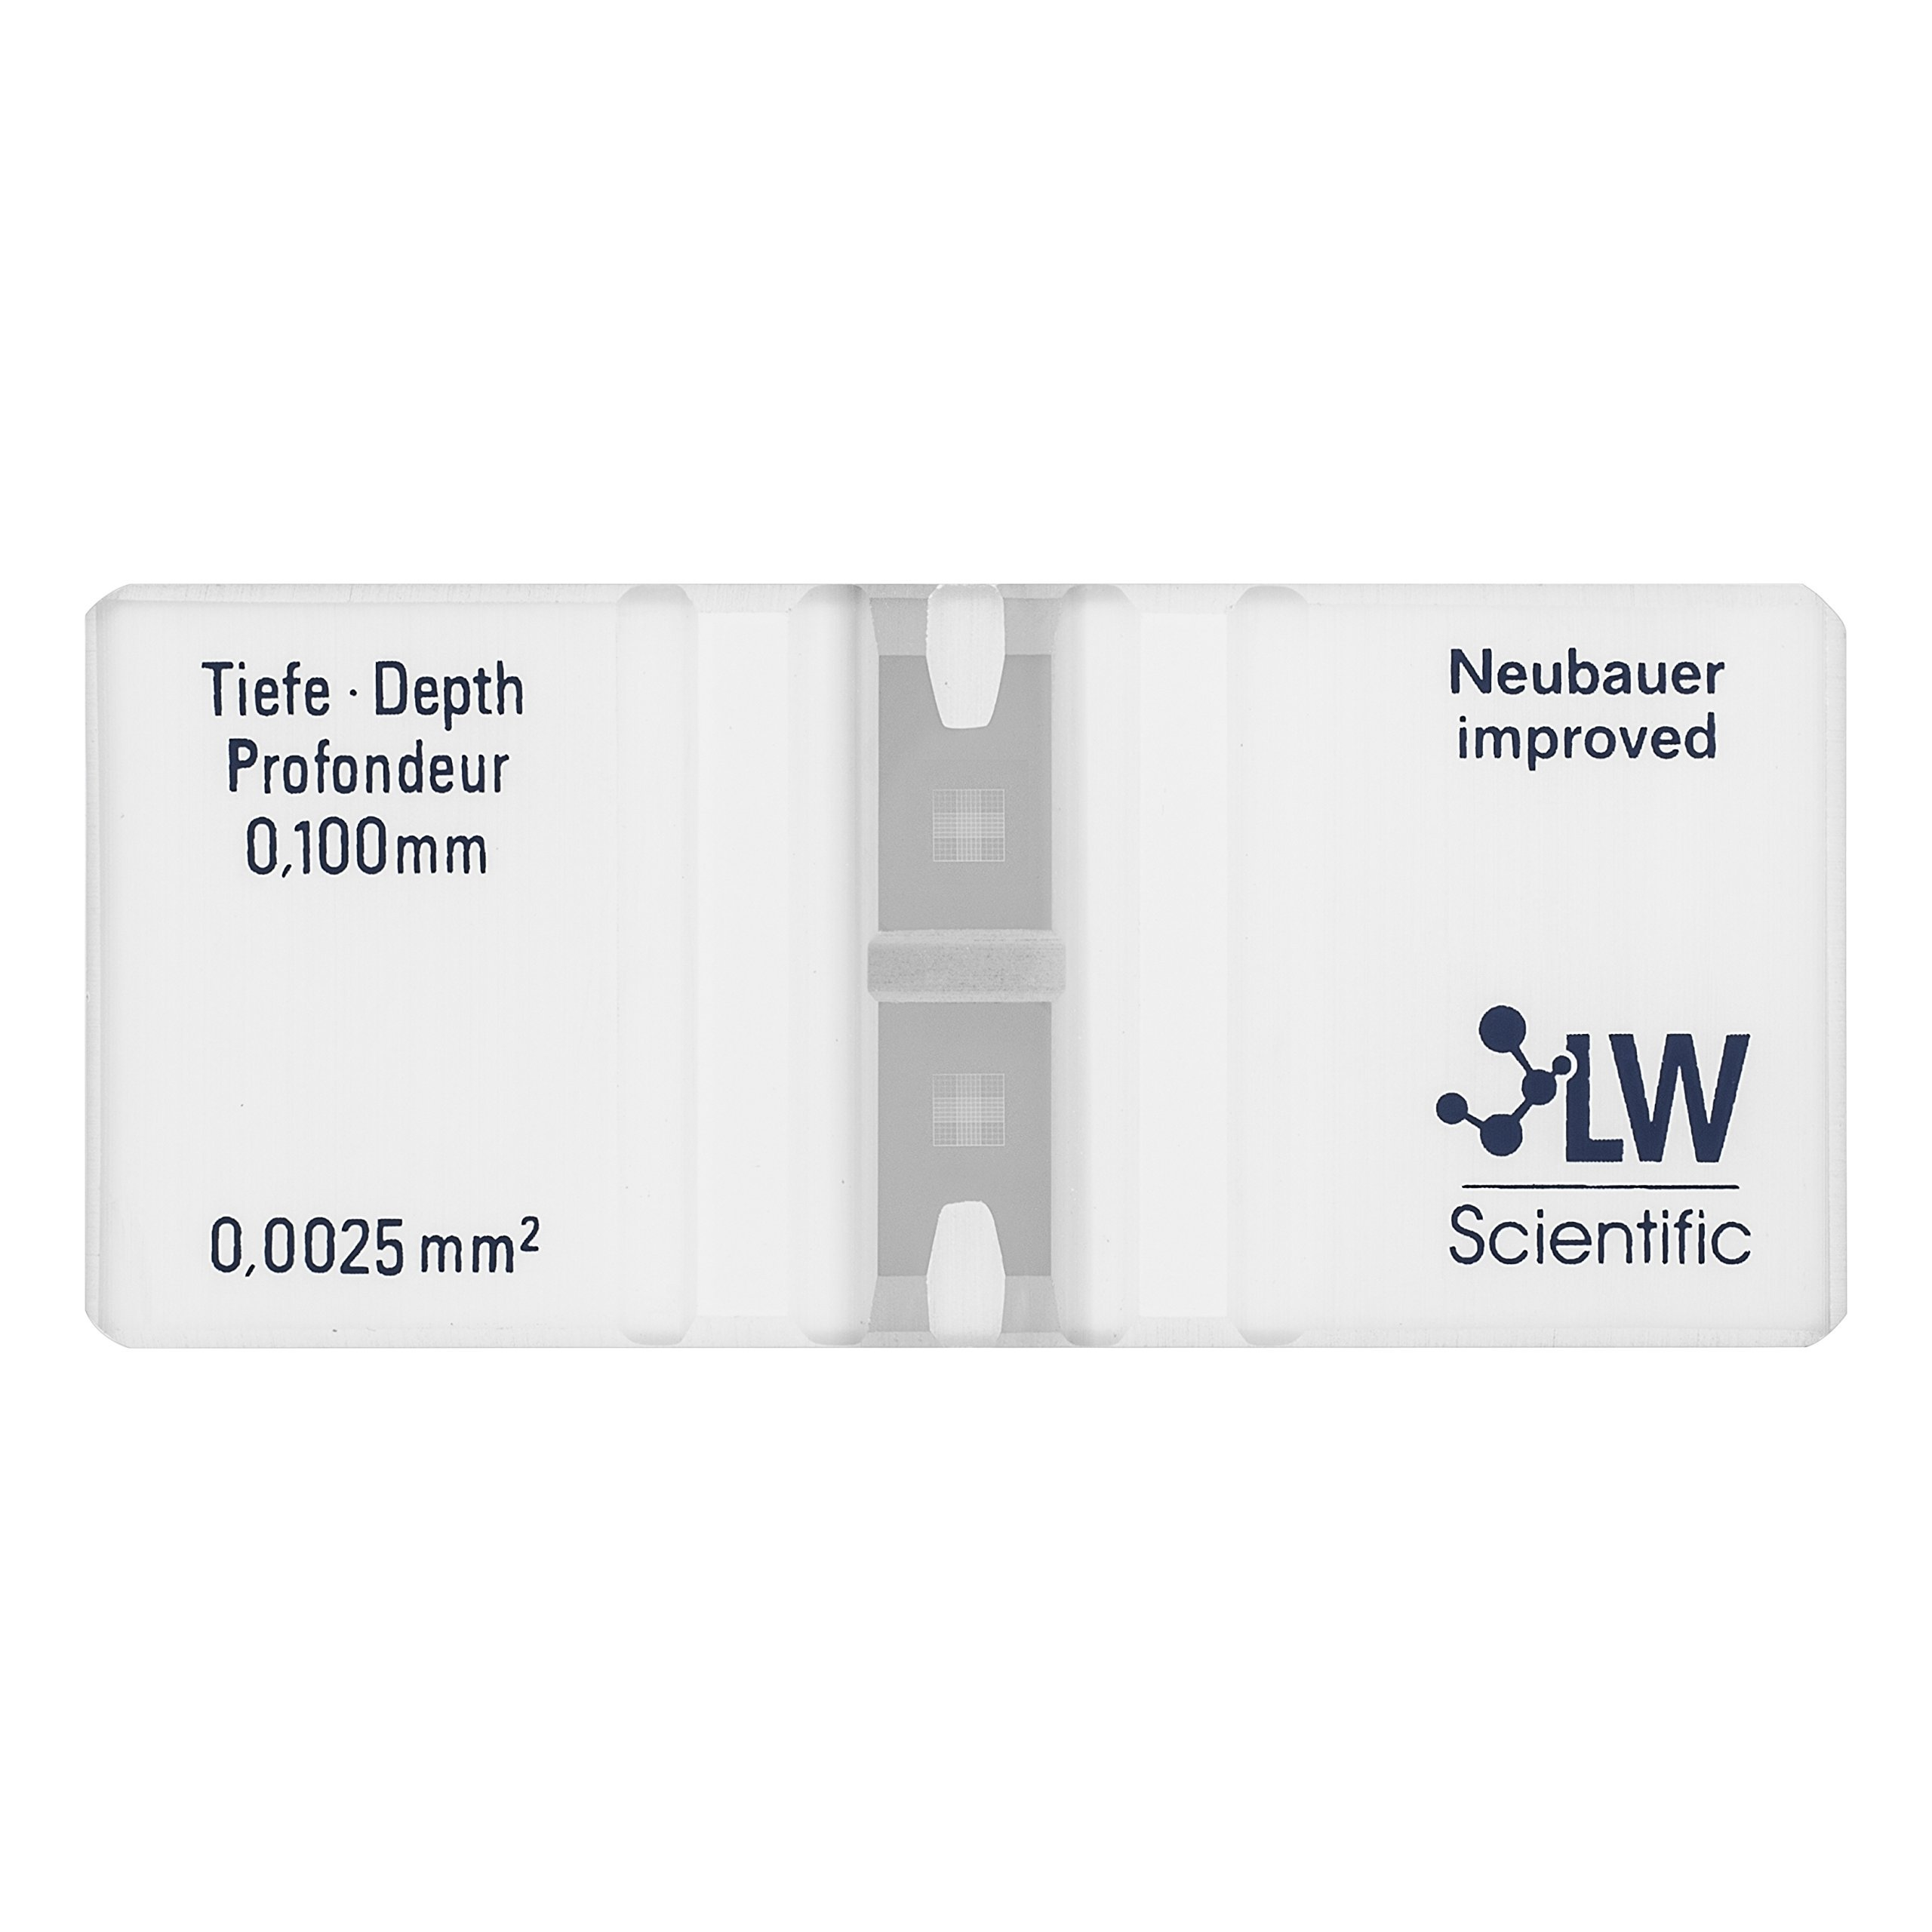 LW Scientific CTL-HEMM-GLDR Hemacytometer, Neubauer Bright Line, Double-Counting Chamber